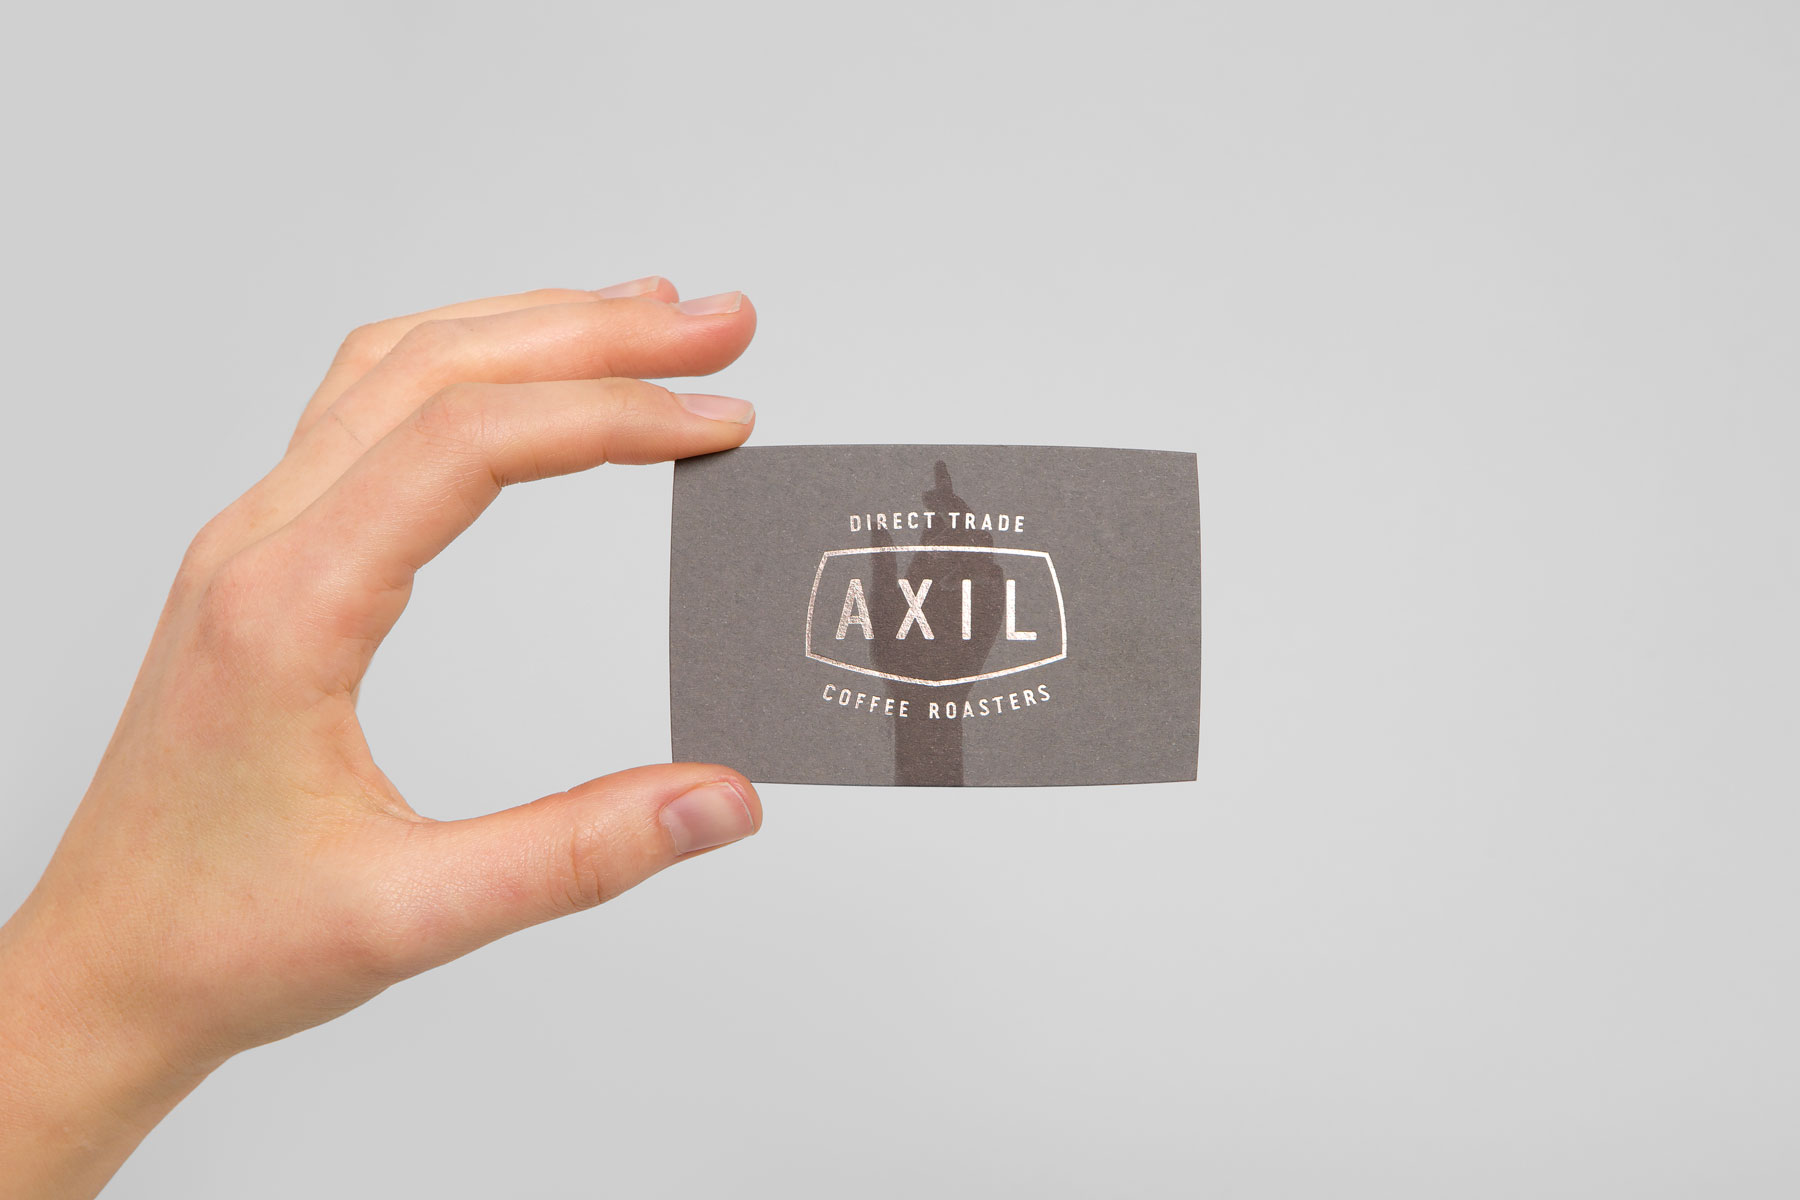 Axil_Coffee_Roasters_Brand_Packaging2